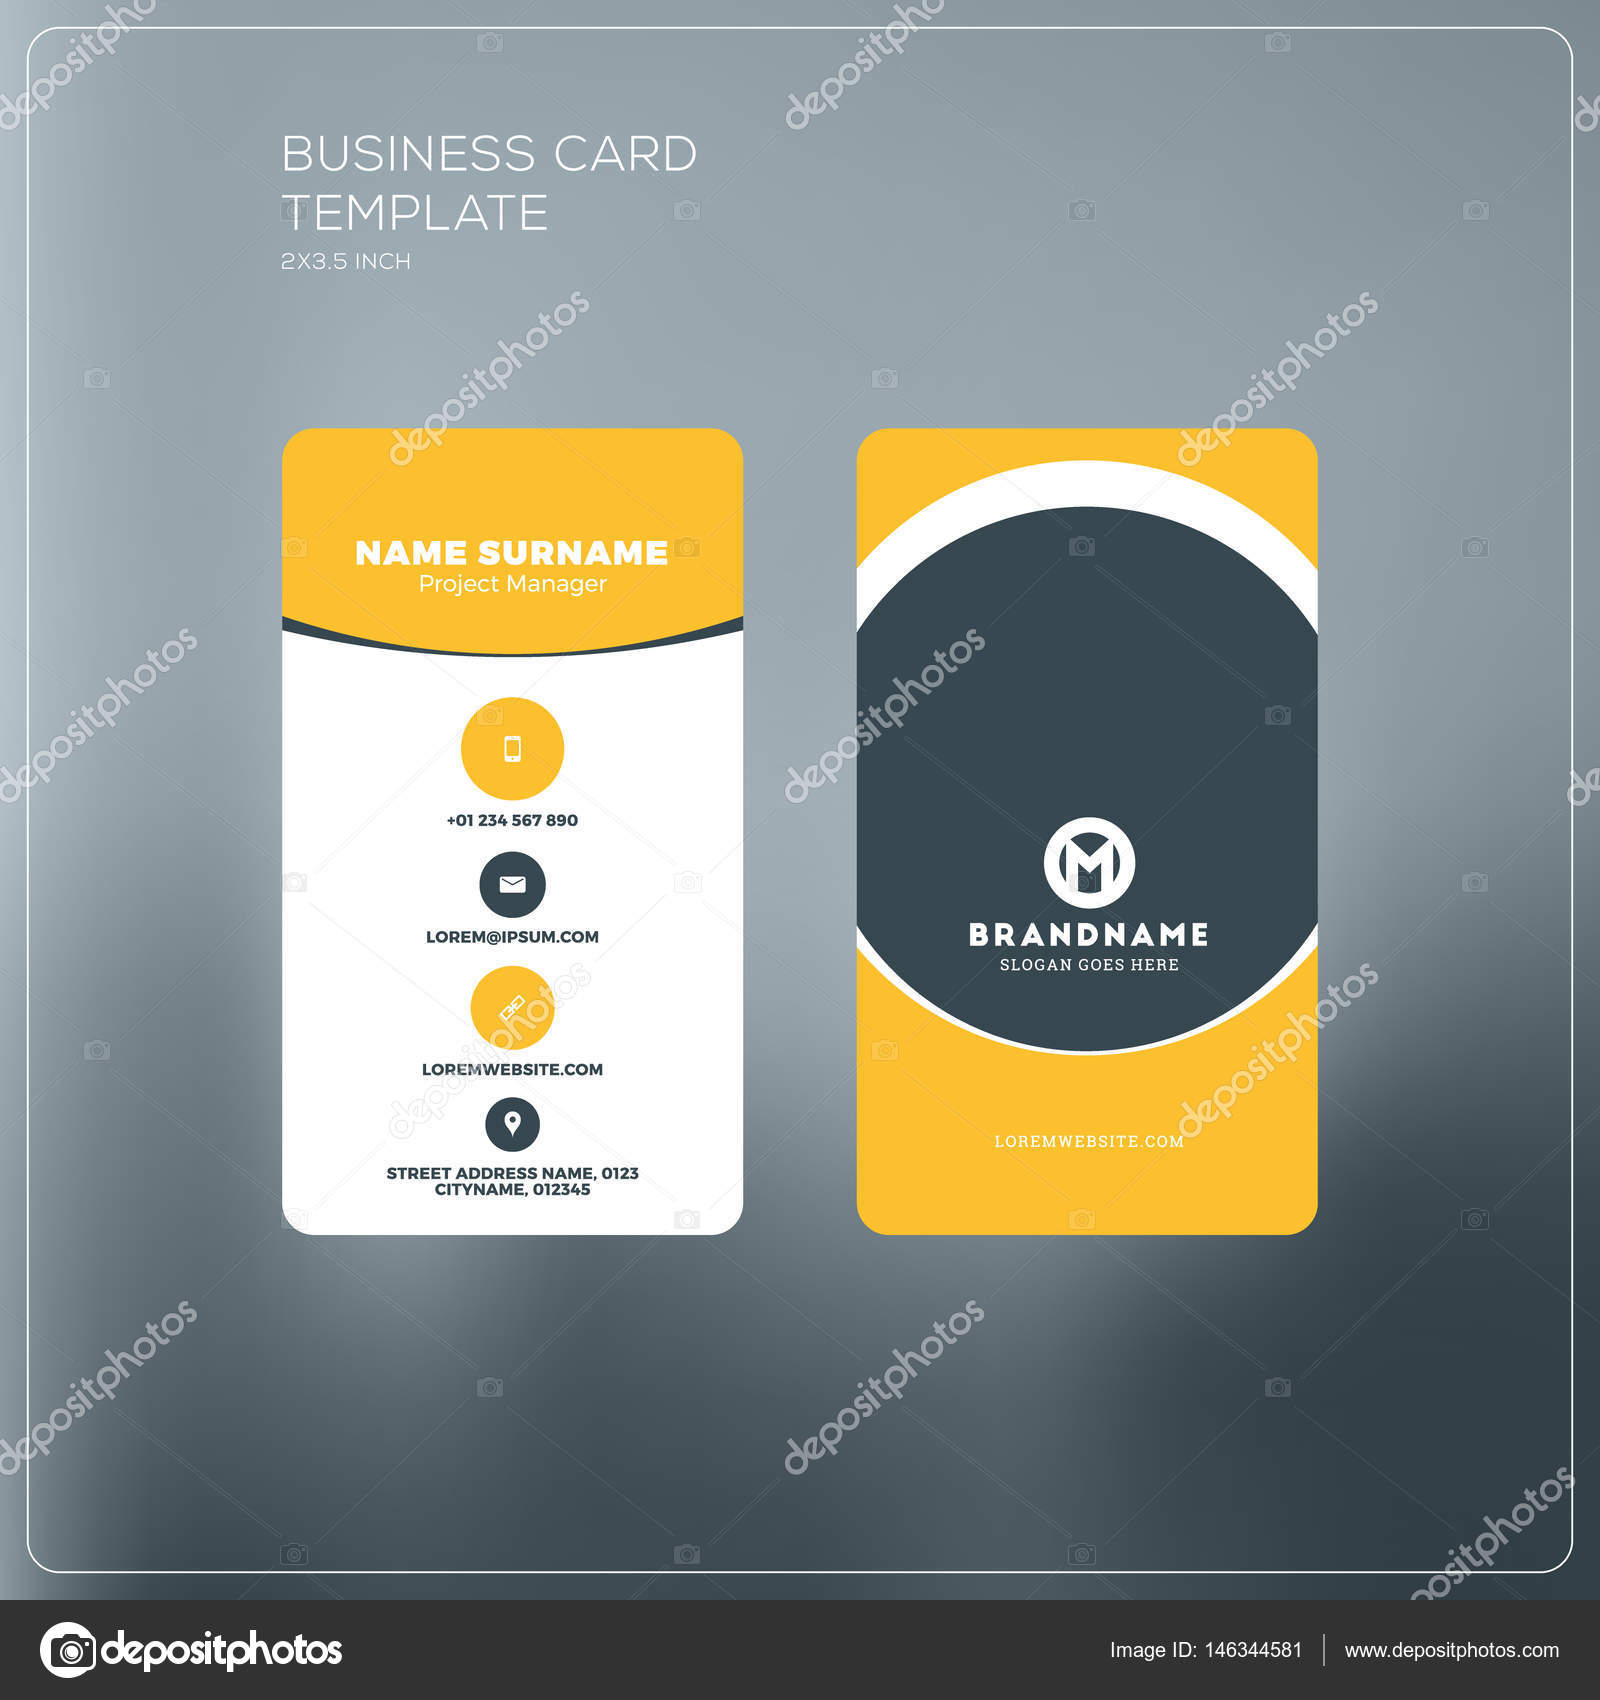 Vertical business card print template personal business card with vertical business card print template personal business card with company logo black and yellow cheaphphosting Image collections